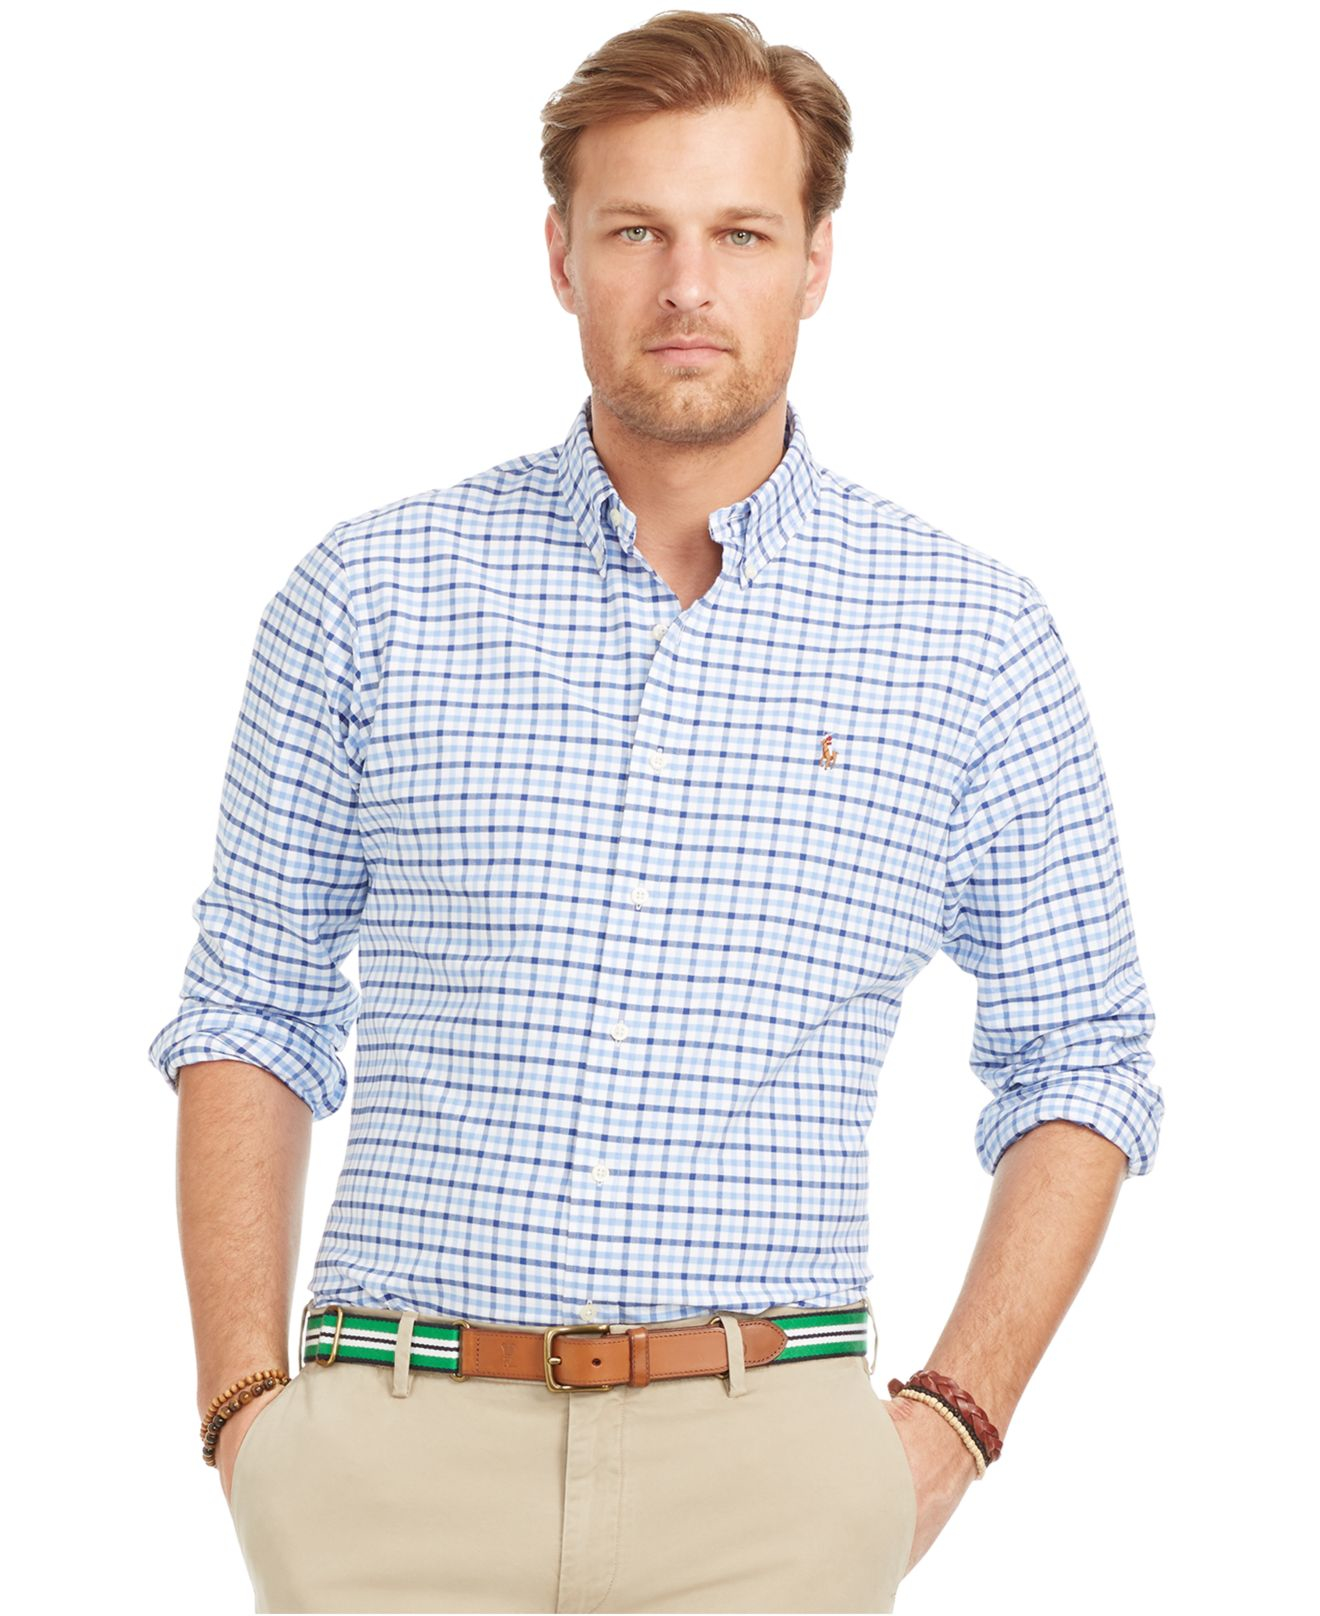 2a9393fae18 Lyst - Polo Ralph Lauren Big And Tall Checked Oxford Shirt in Blue ...